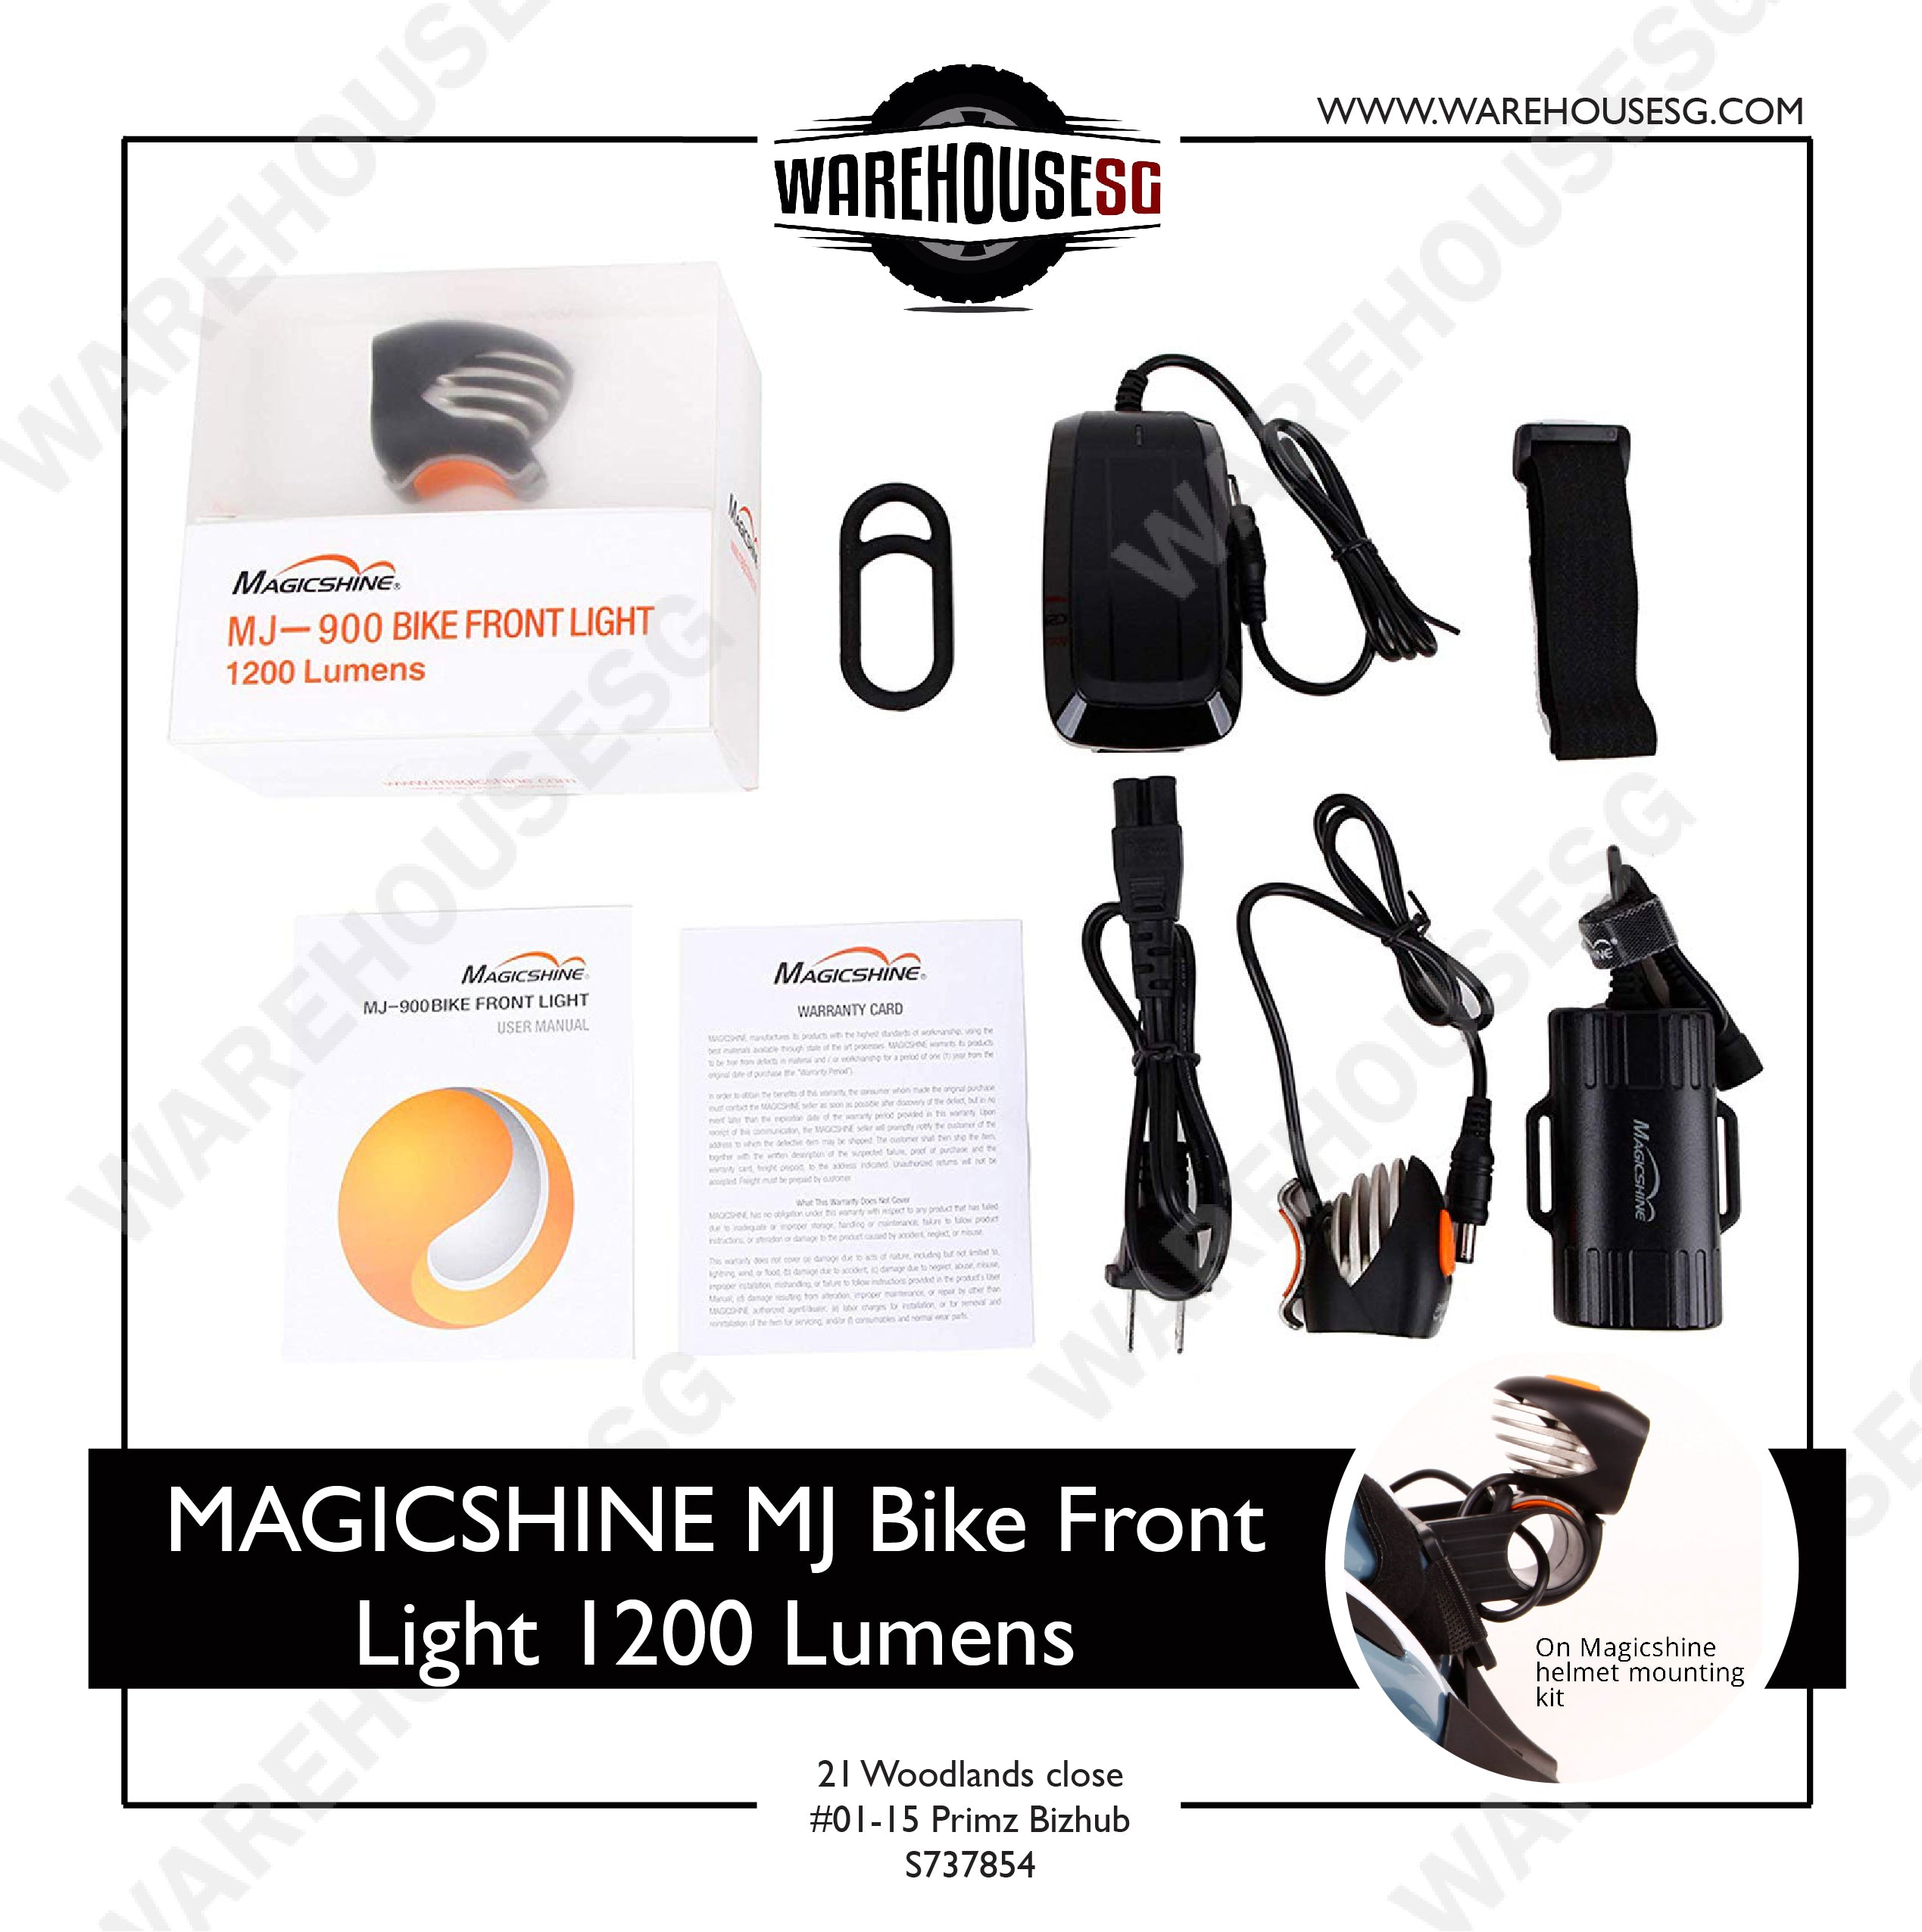 MAGICSHINE MJ Bike Front Light 1200 Lumens